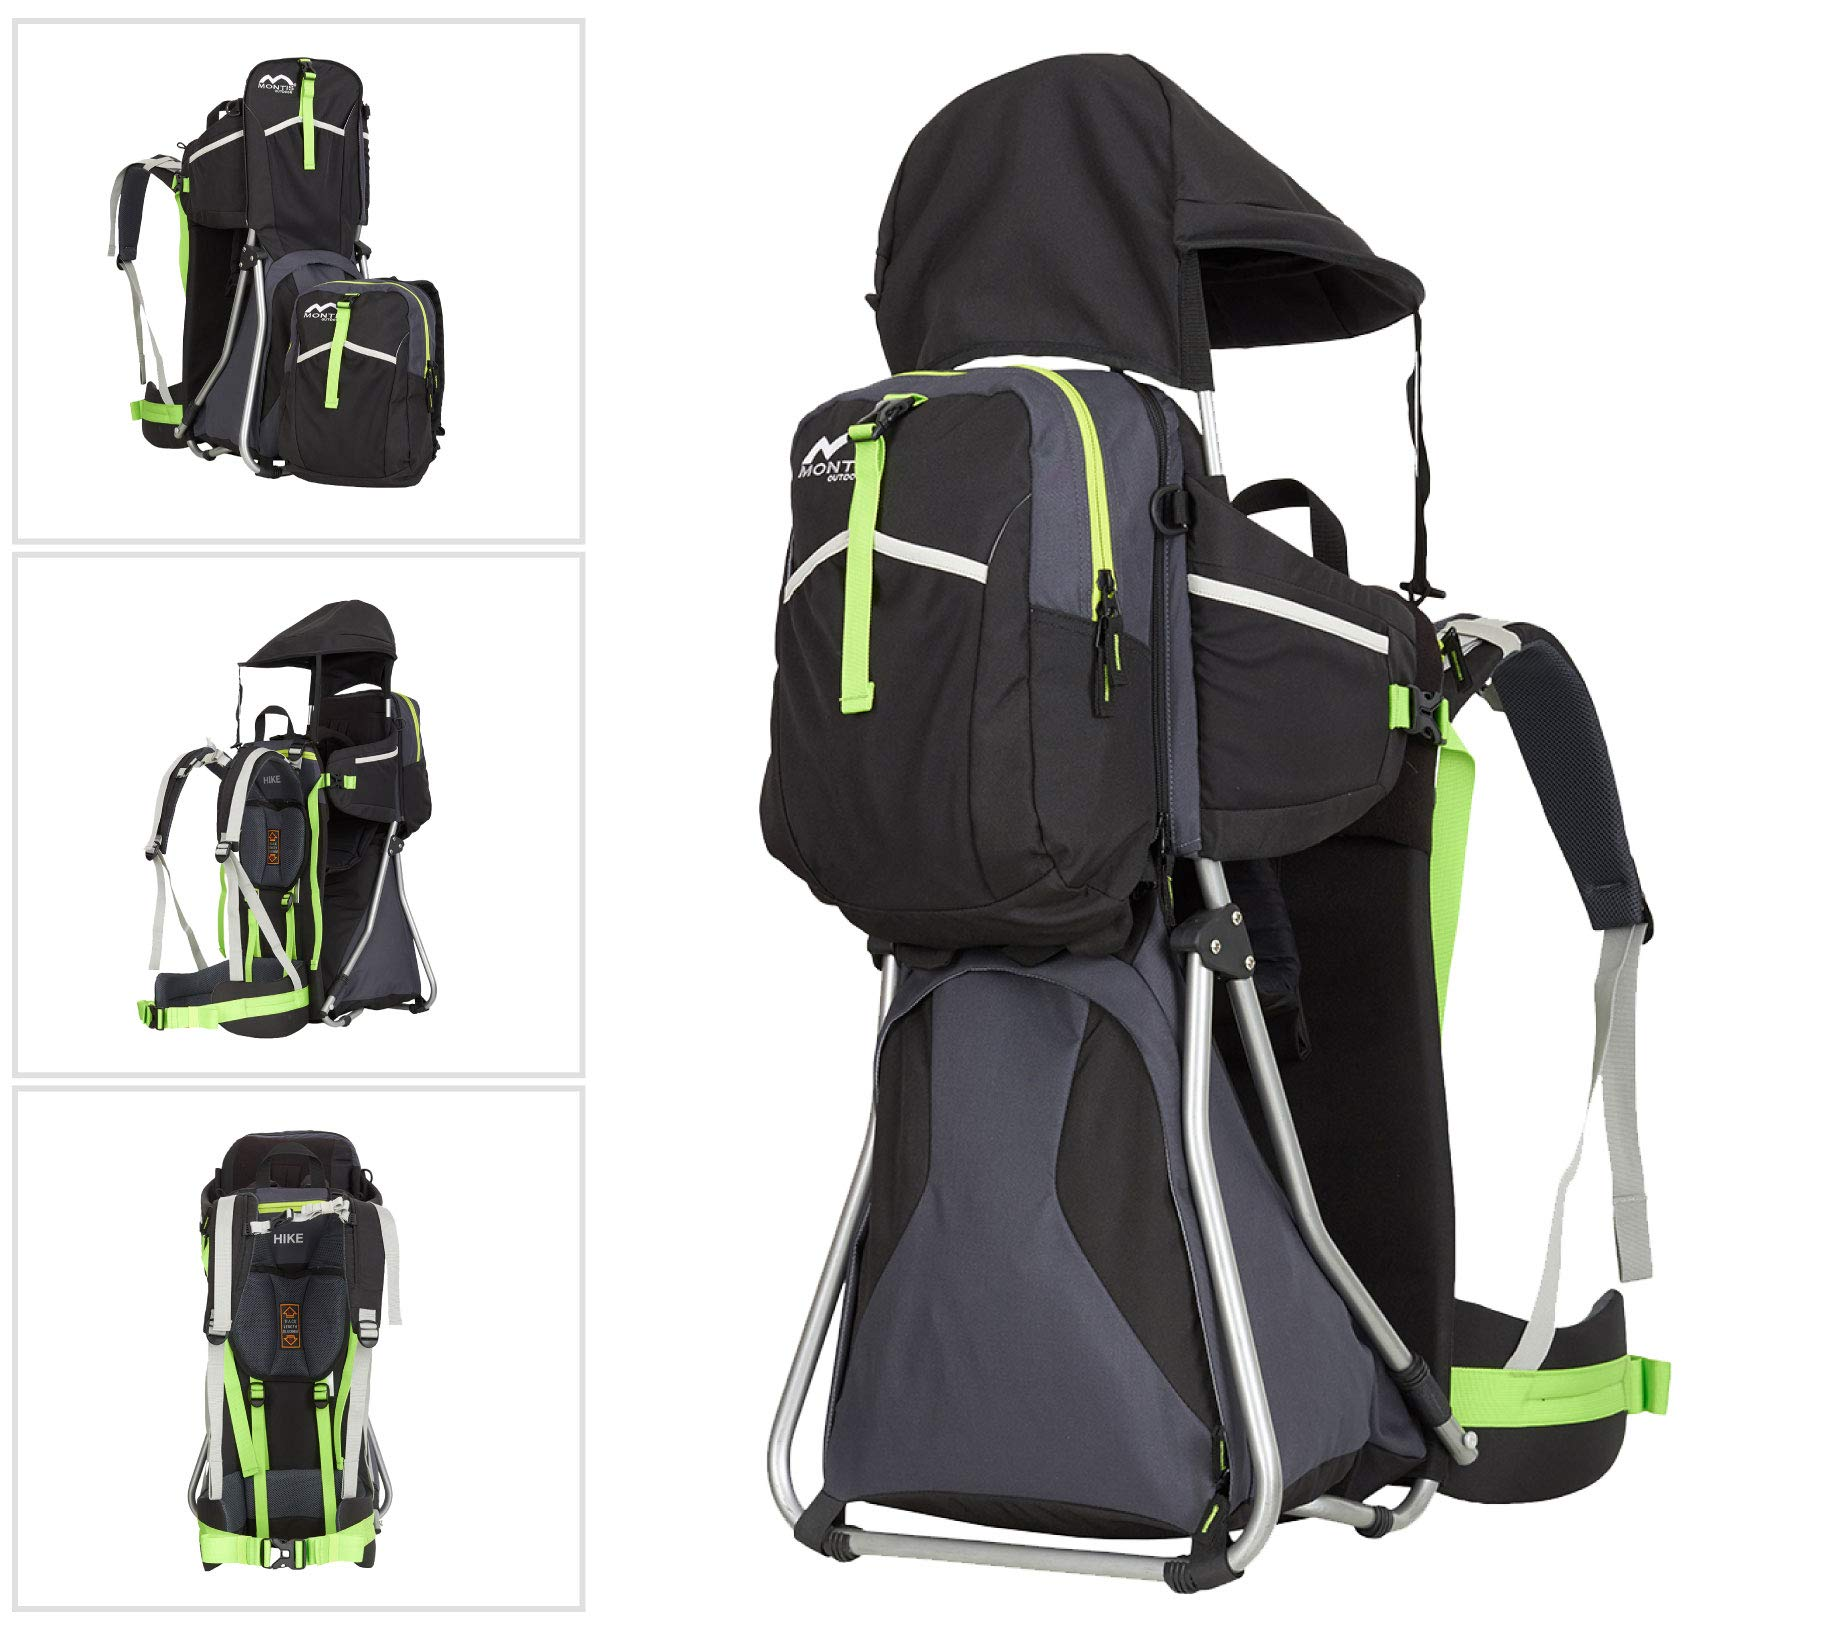 MONTIS HIKE, Premium Back Baby/Child Carrier, Up to 25kg, (black) M MONTIS OUTDOOR 89cm high, 37cm wide | up to 25kg | various colours | 28L seat bag Laminated and dirt-repellant outer material | approx. 2.2kg (without extras) Fully-adjustable, padded 5-point child's safety harness | plush lining, raised wind guard, can be filled from both sides | forehead cushion 1